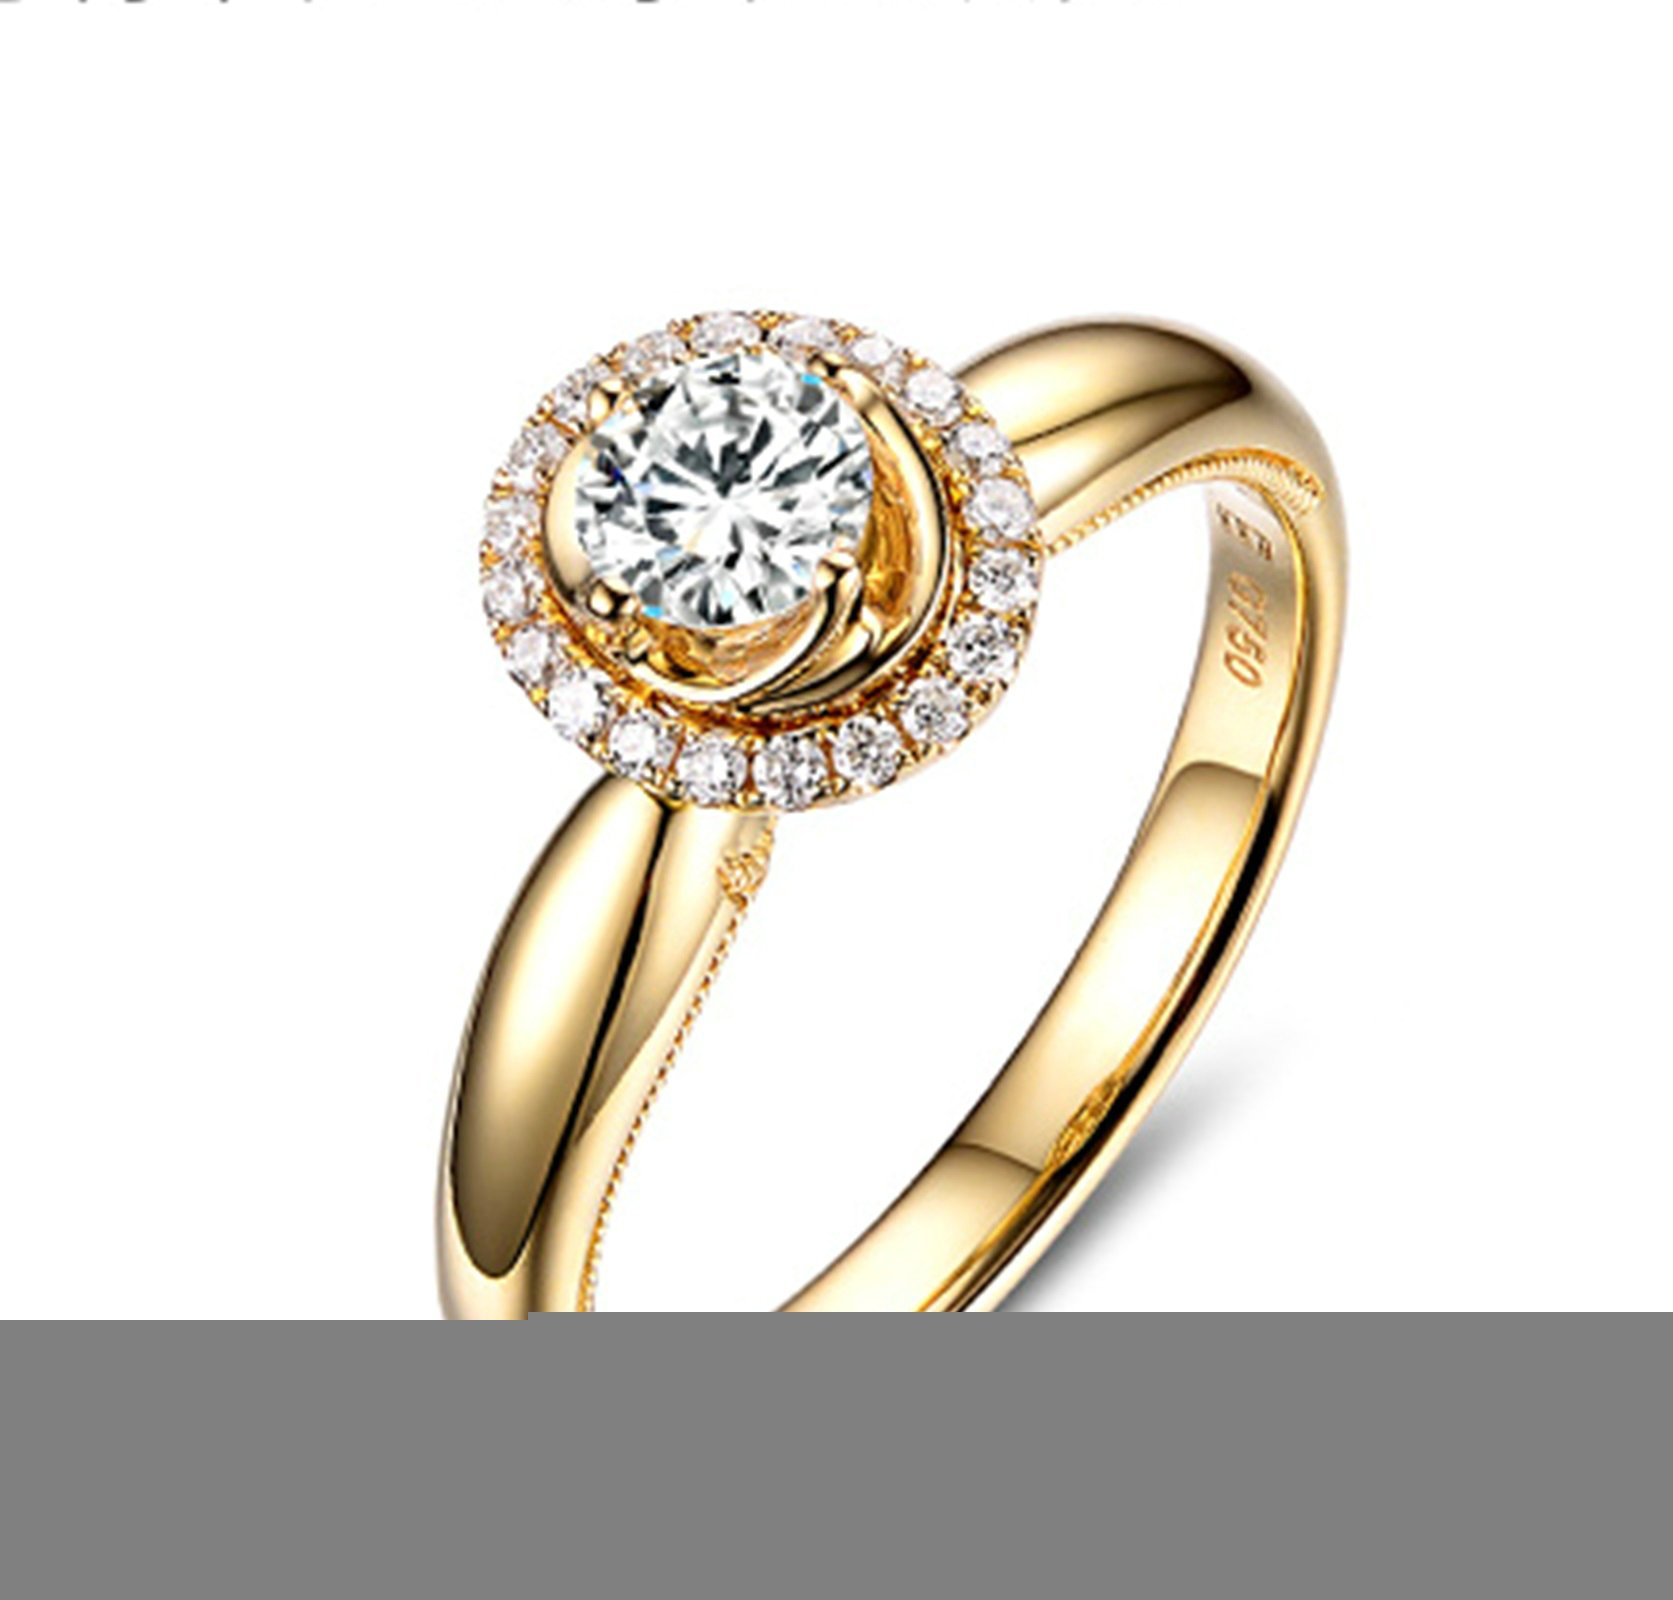 Gnzoe Rose Gold Women Wedding Rings Solitaire Promise Rings Crown Flowers Yellow with White Blue 0.3ct Diamond Size 8.5 by Gnzoe